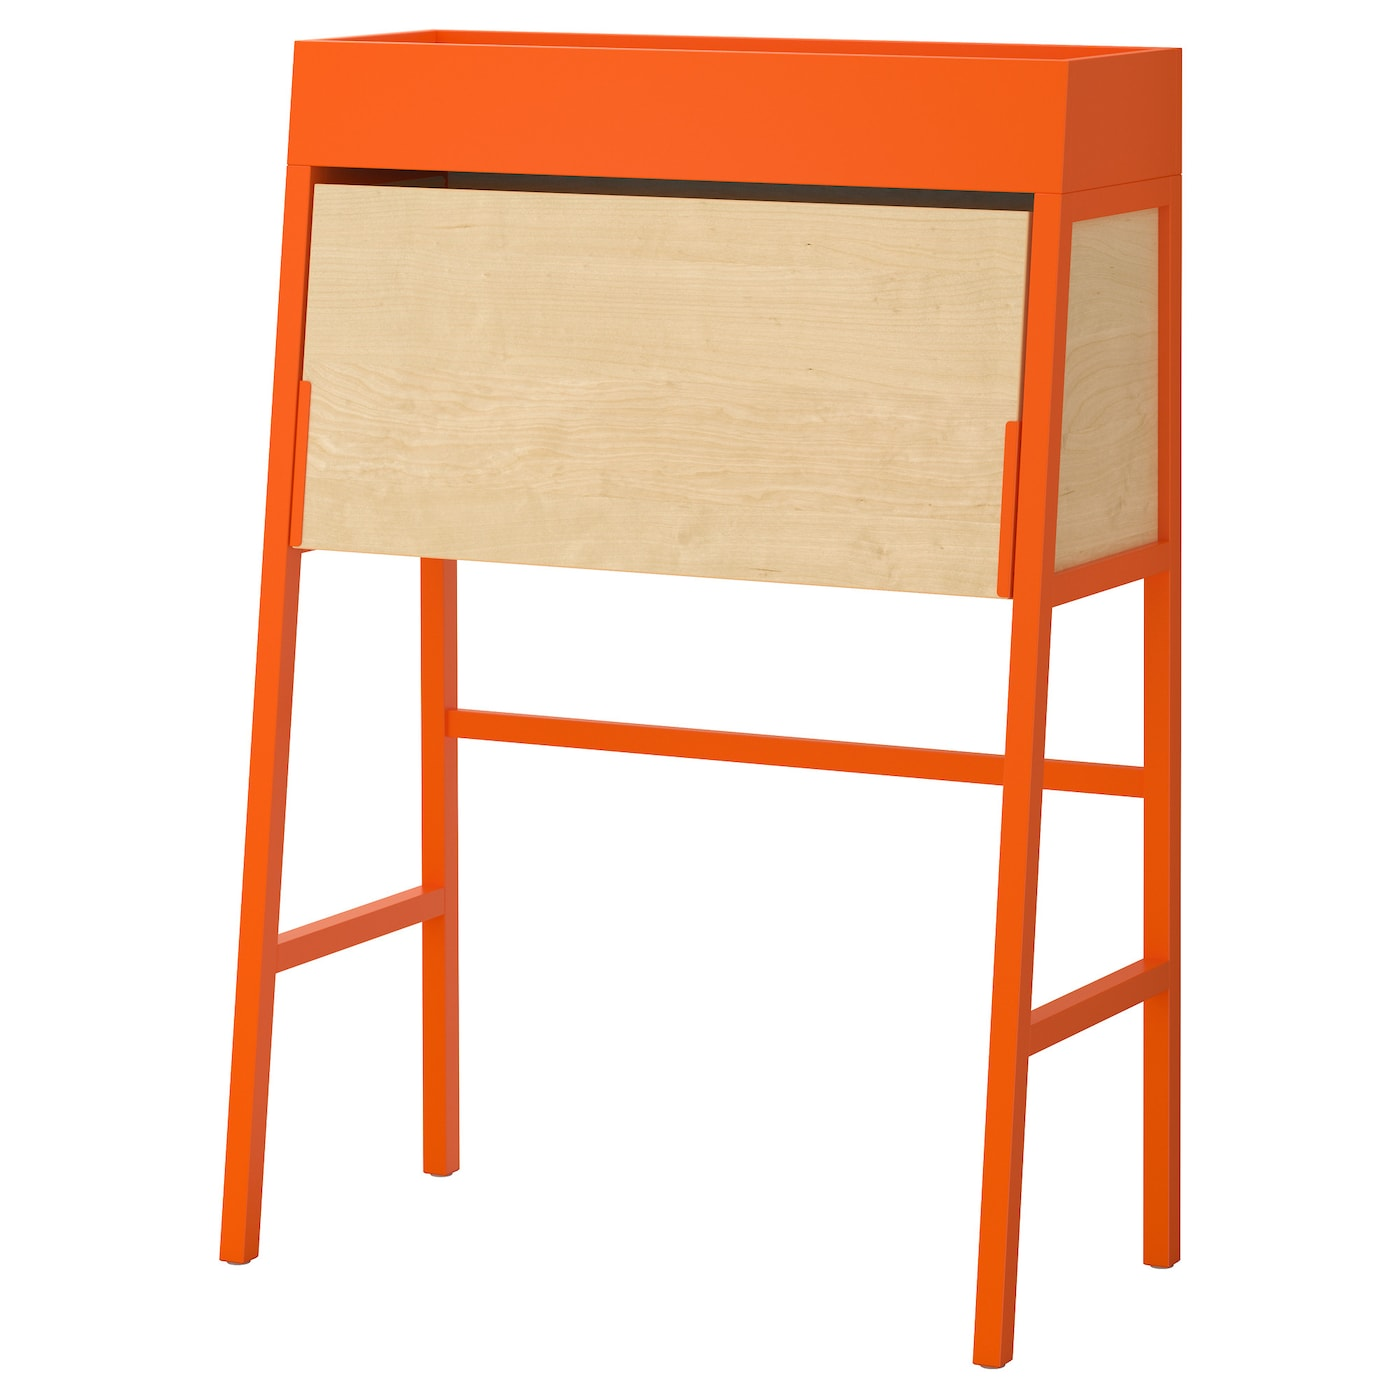 ikea ps 2014 bureau orange birch veneer 90x127 cm ikea. Black Bedroom Furniture Sets. Home Design Ideas